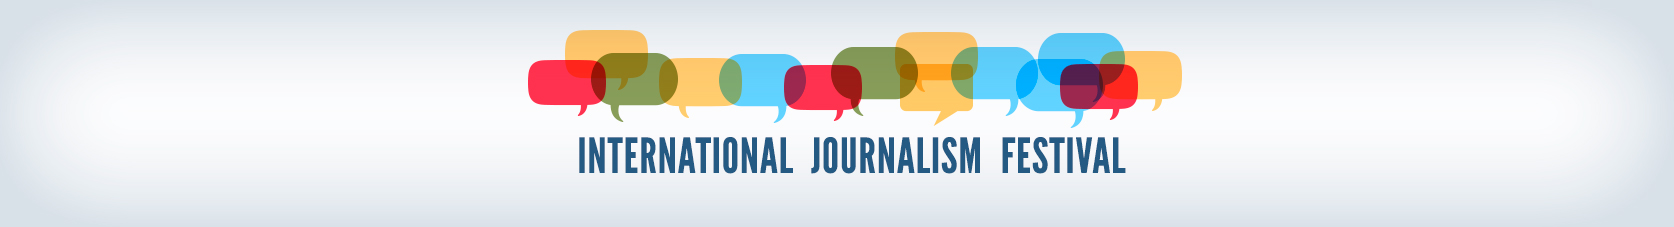 International Journalism Festival 2015